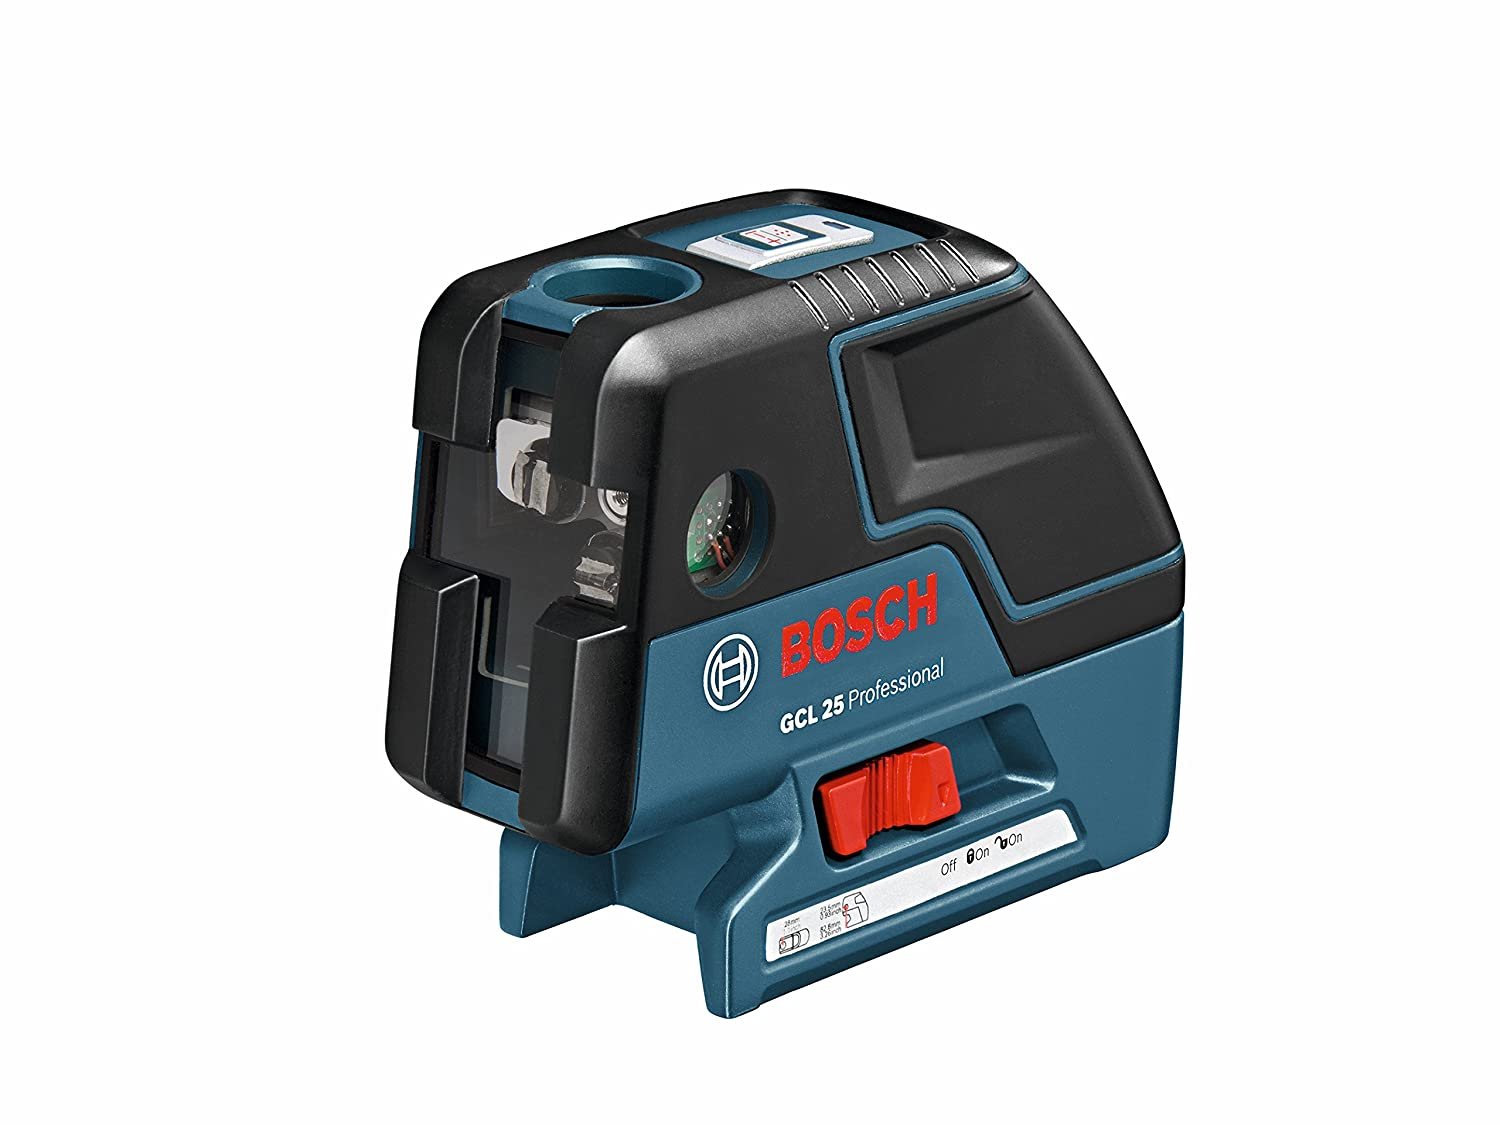 Bosch Self-Leveling 5-Point Alignment Laser GCL 25